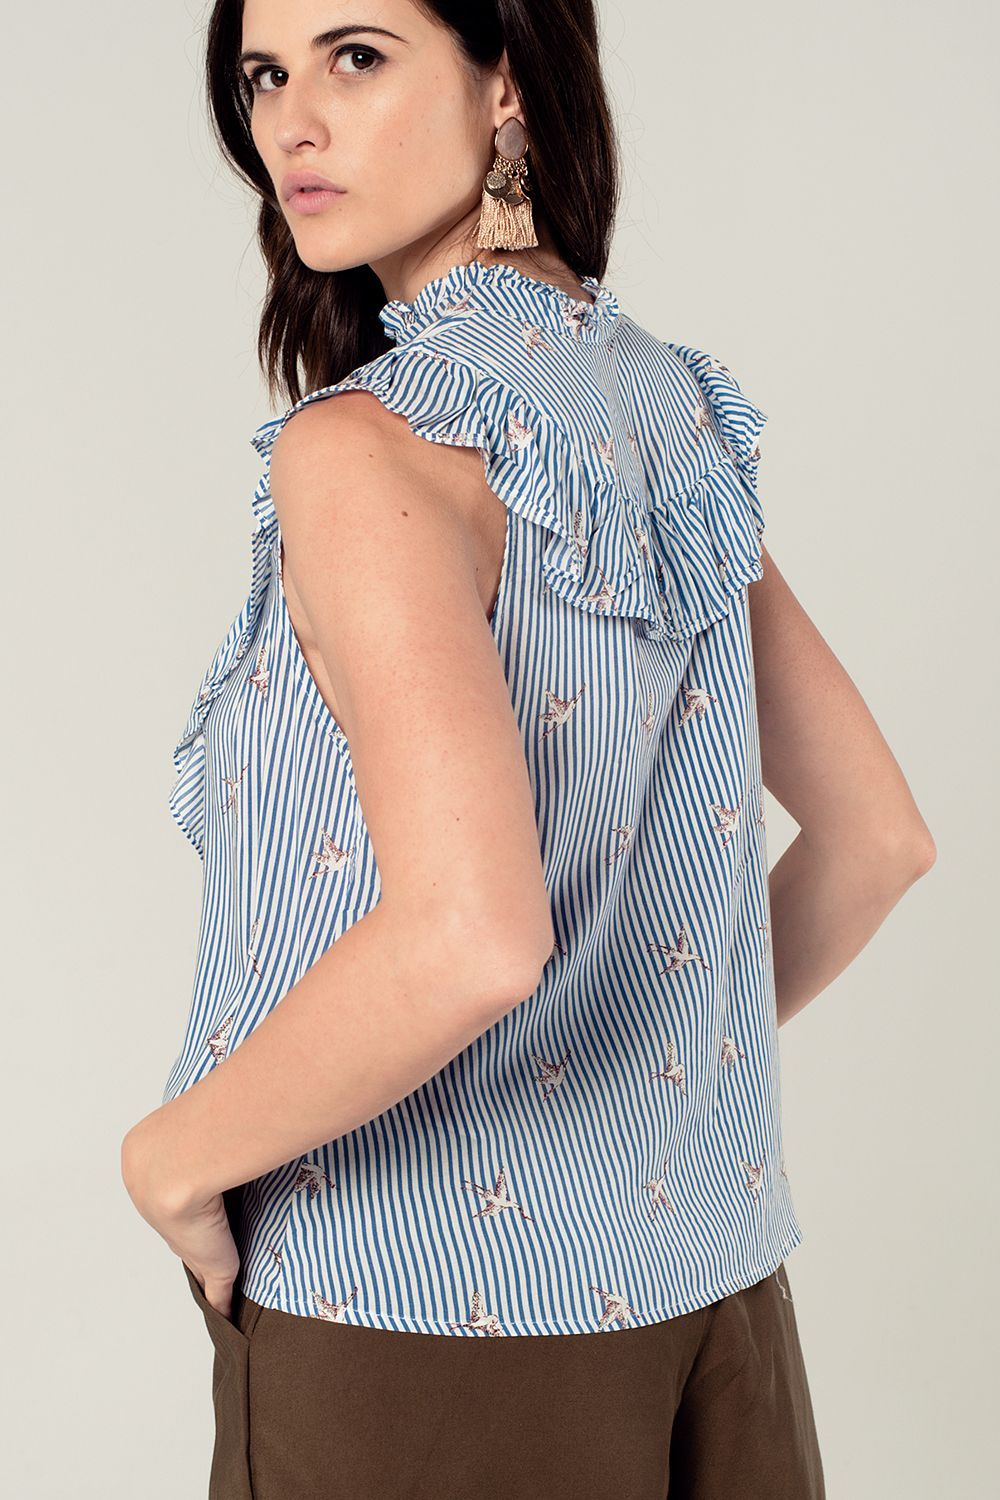 Blue Pattern Printed Shirt - LoveSylvester